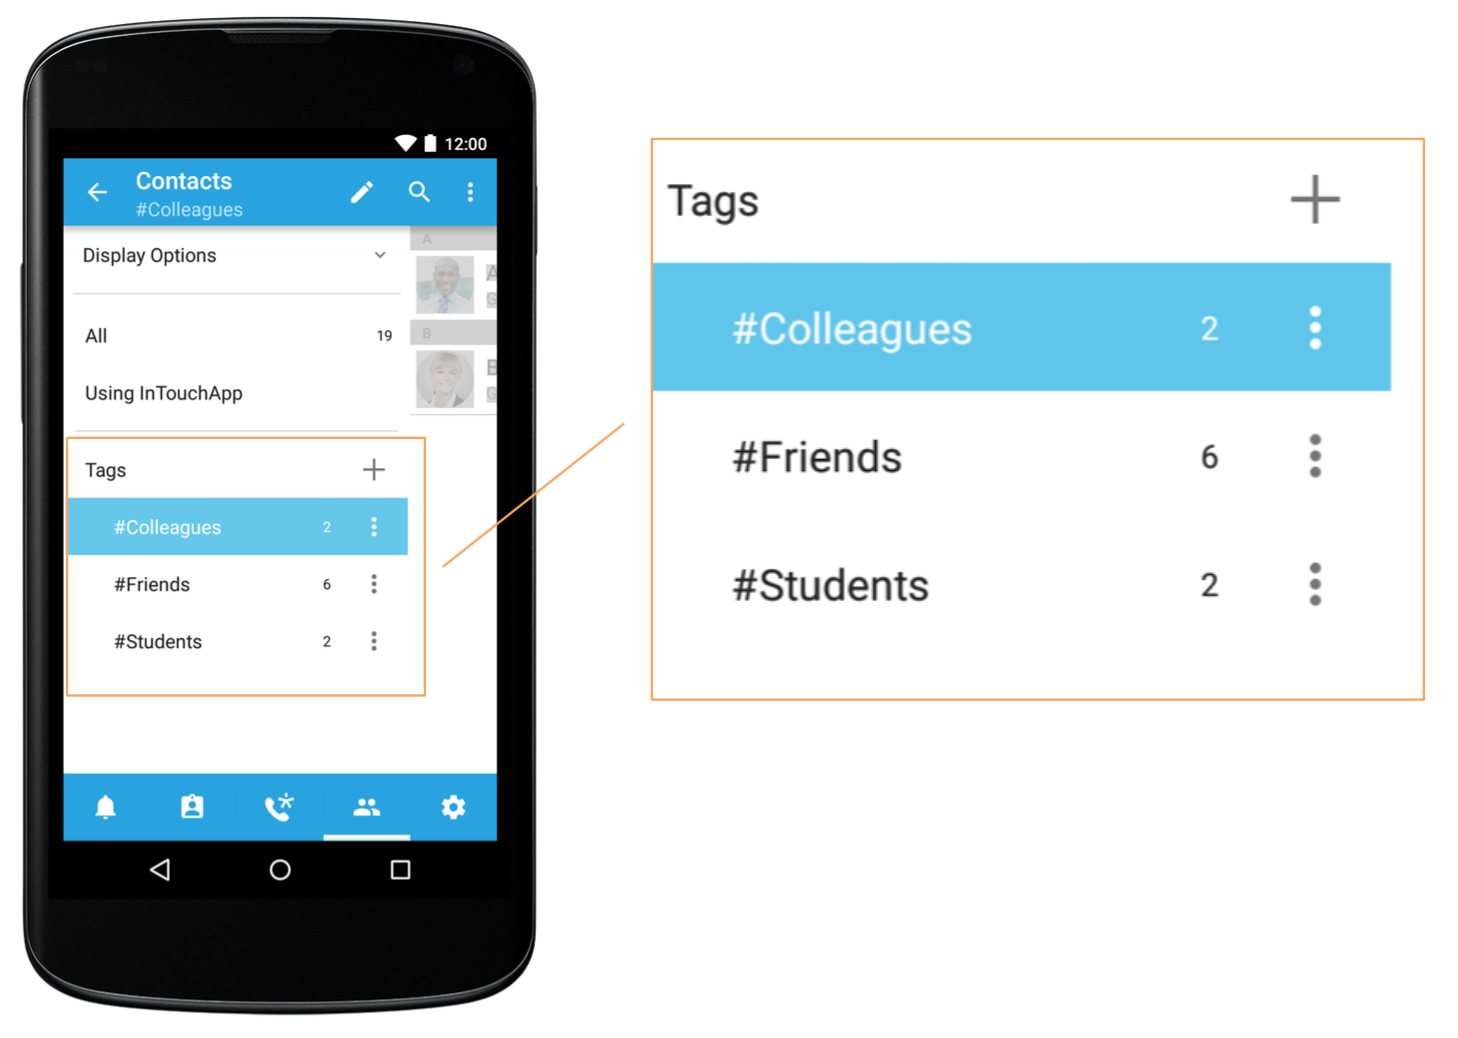 #Tags to organize contacts